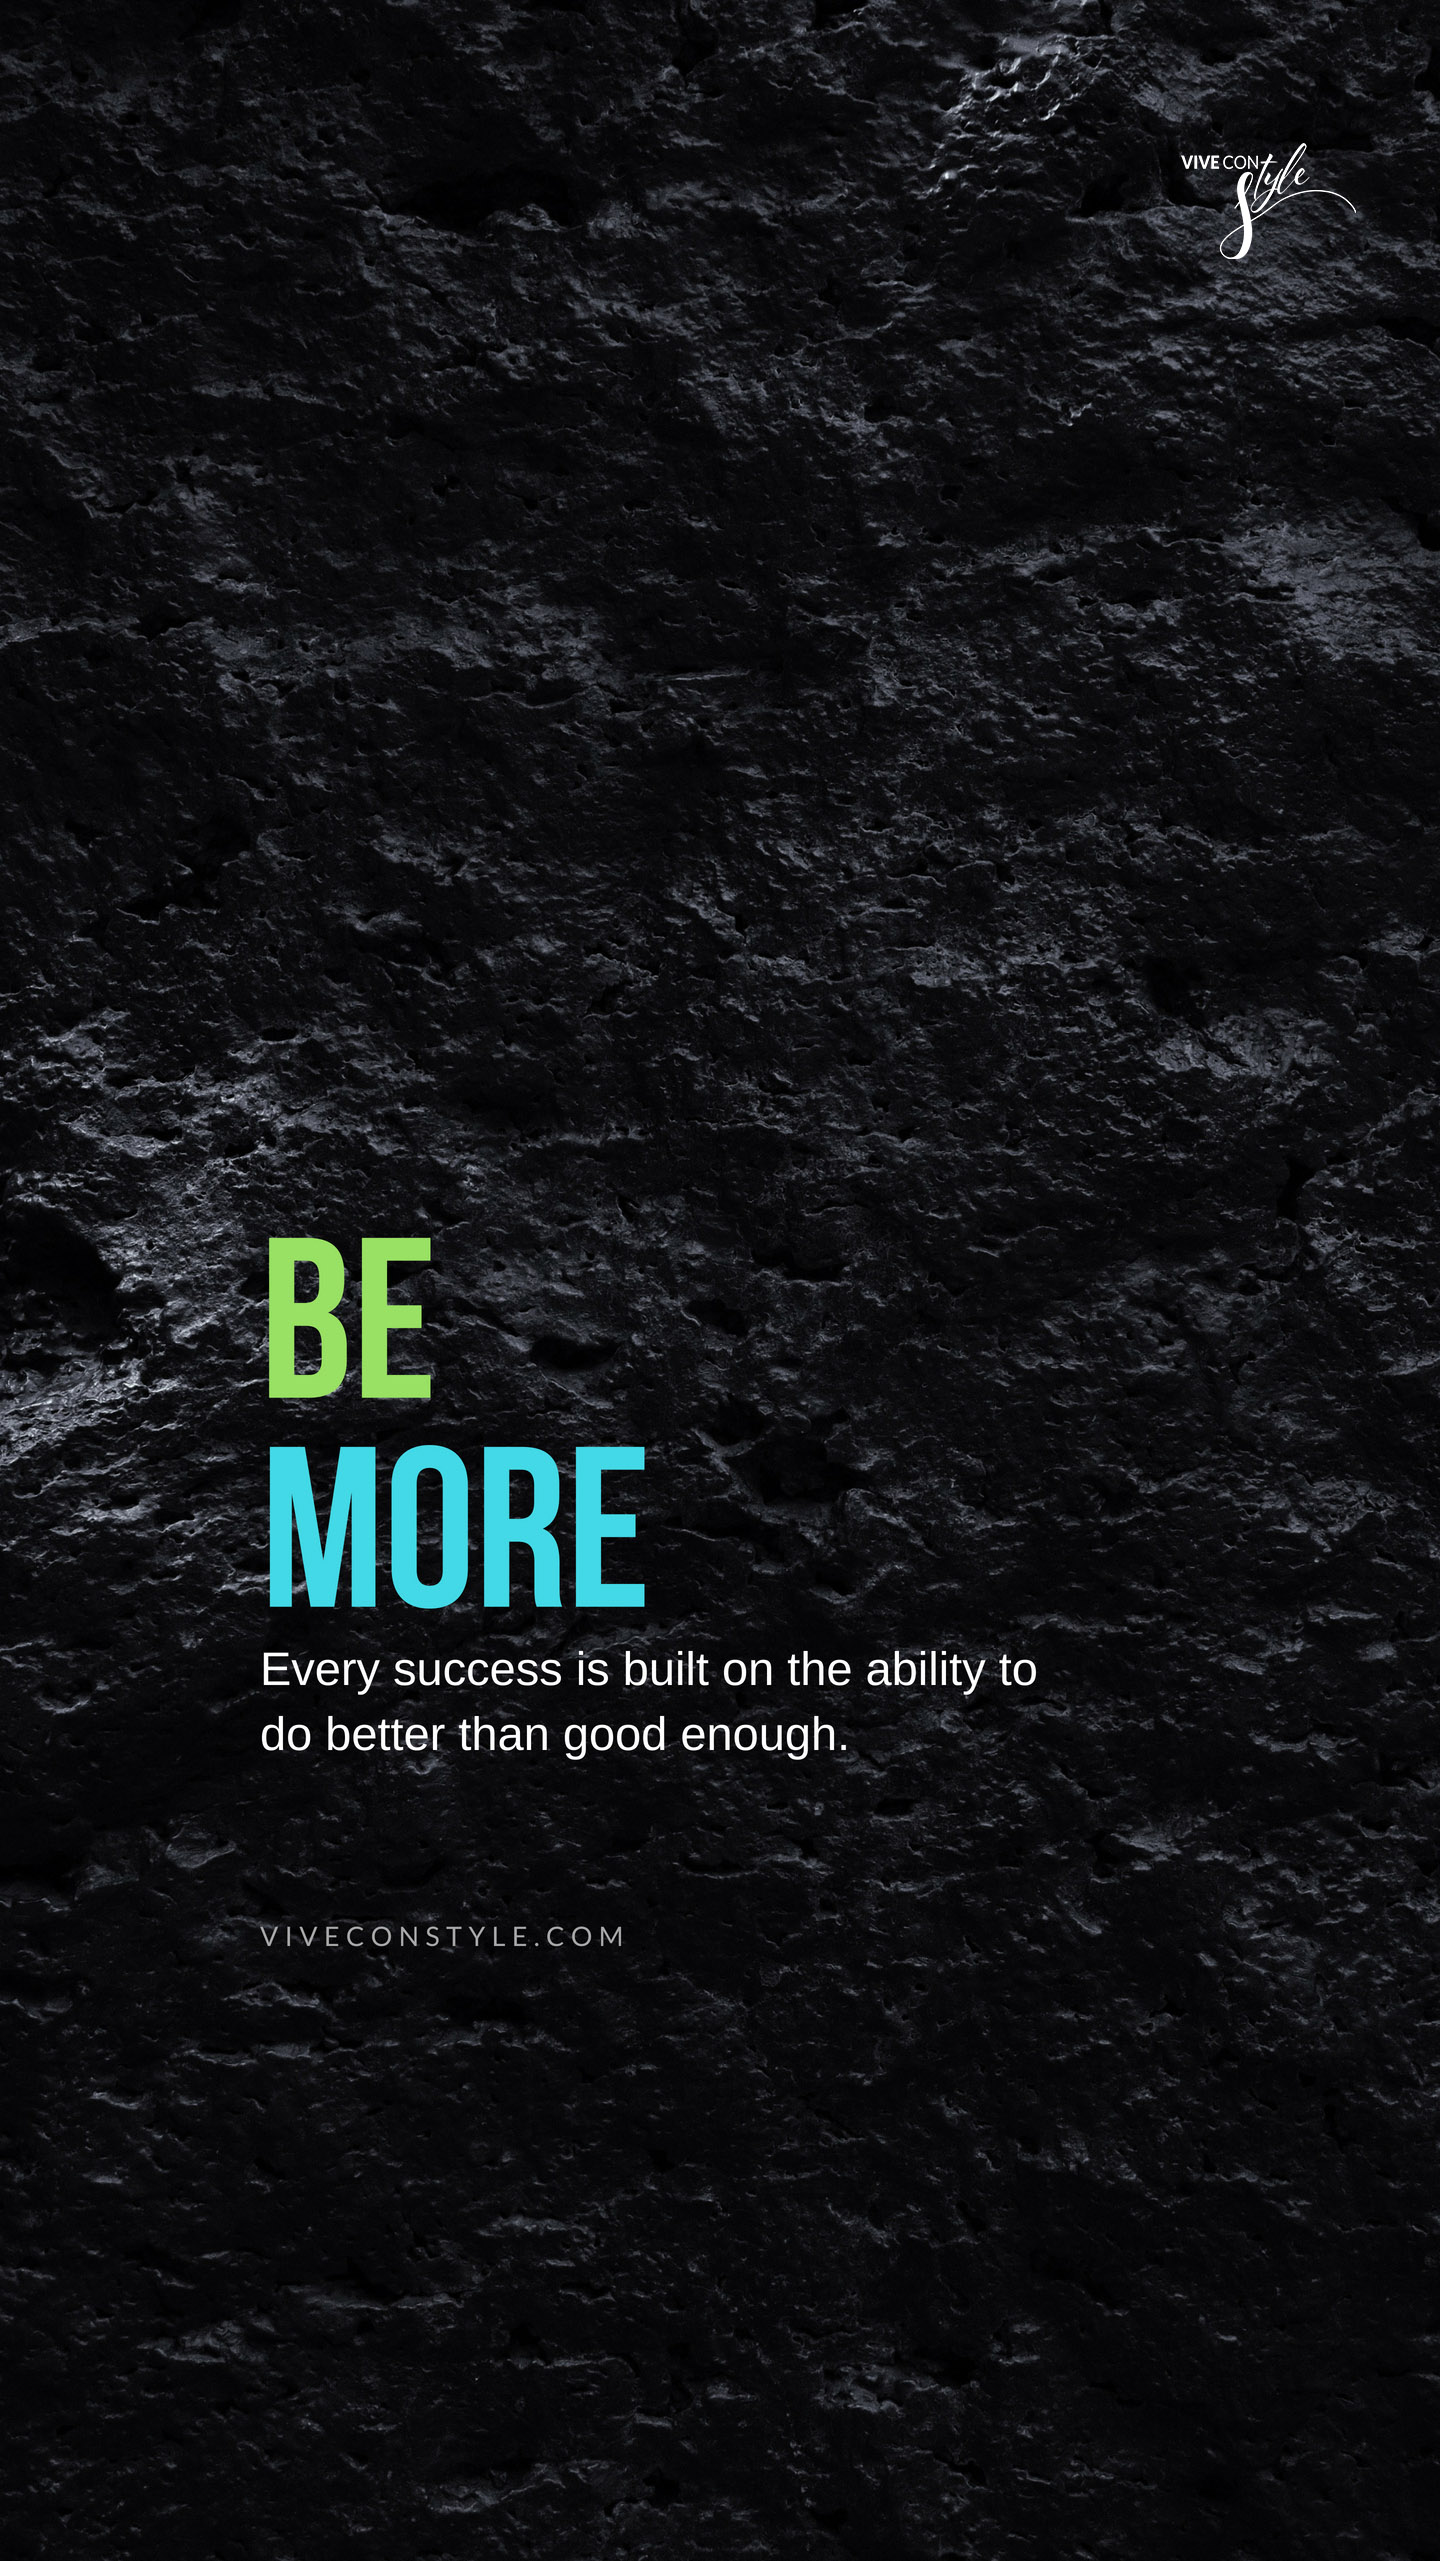 Be more inspirational quotes wallpaper